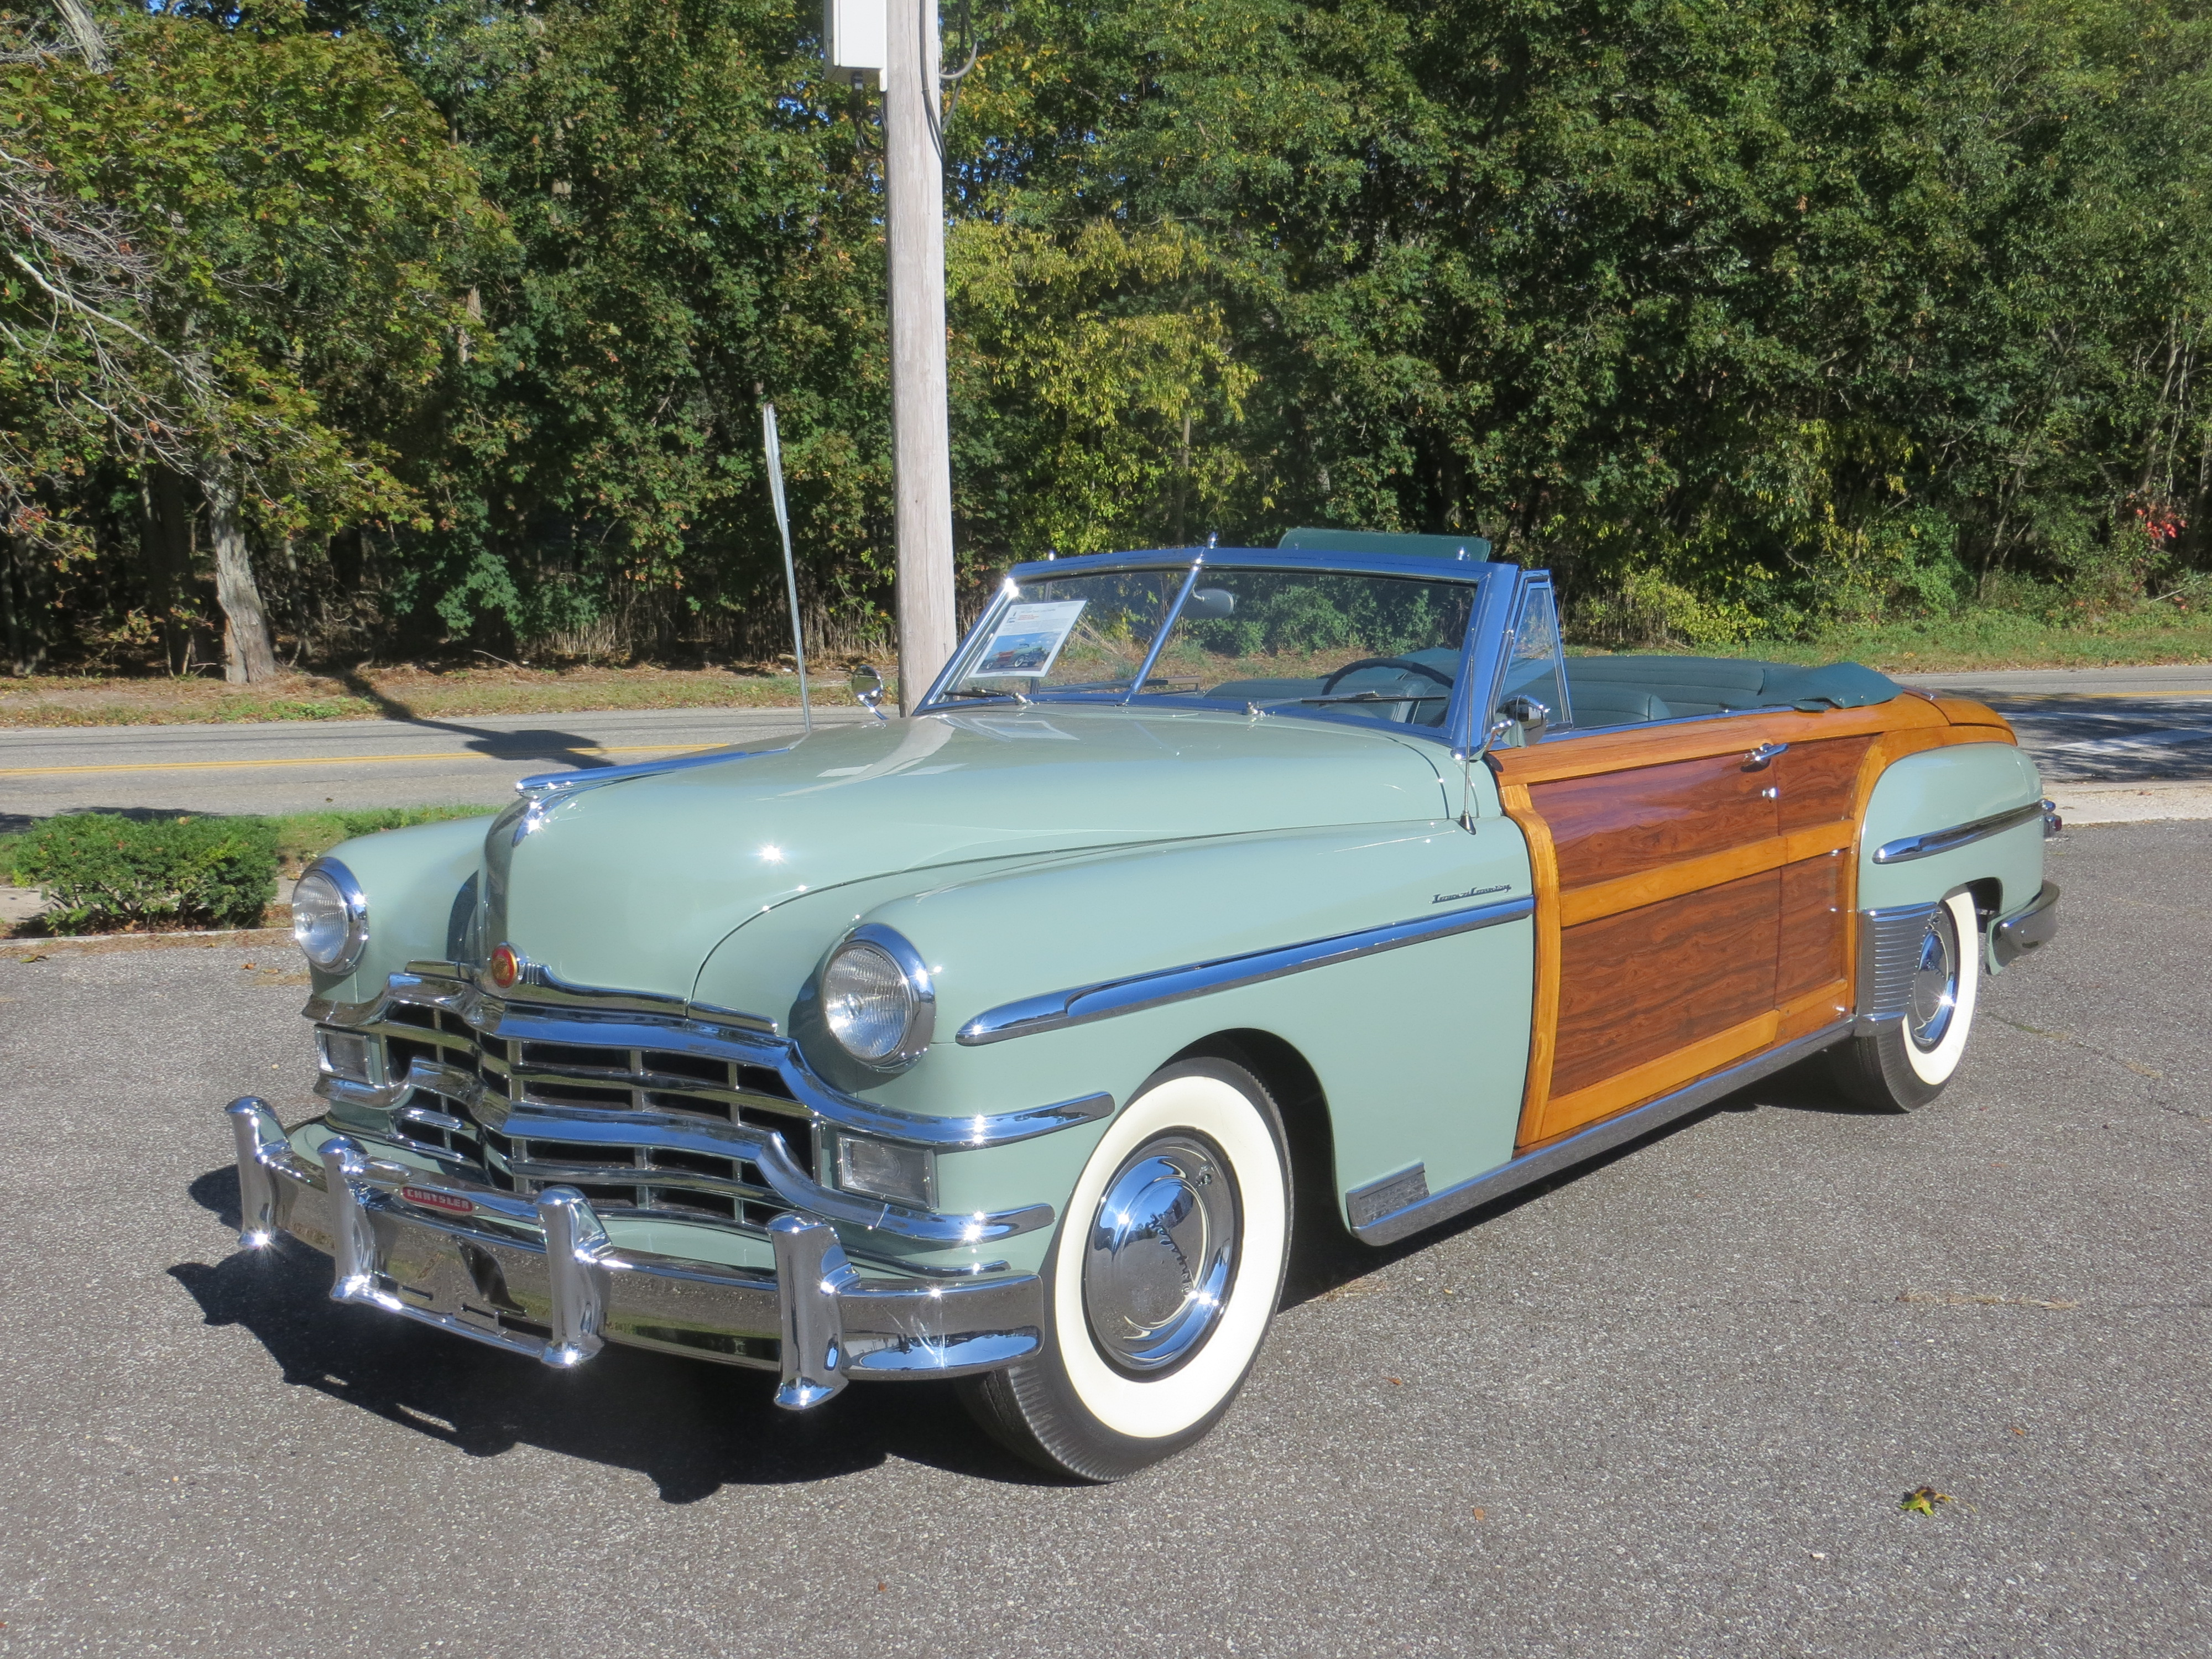 New Page 2 1949 Chrysler Town Country And Convertible 4th Car Off The Assembly Line Rare Mahogany Insert Panels Which Are Correct For Early 49 Cars 100000